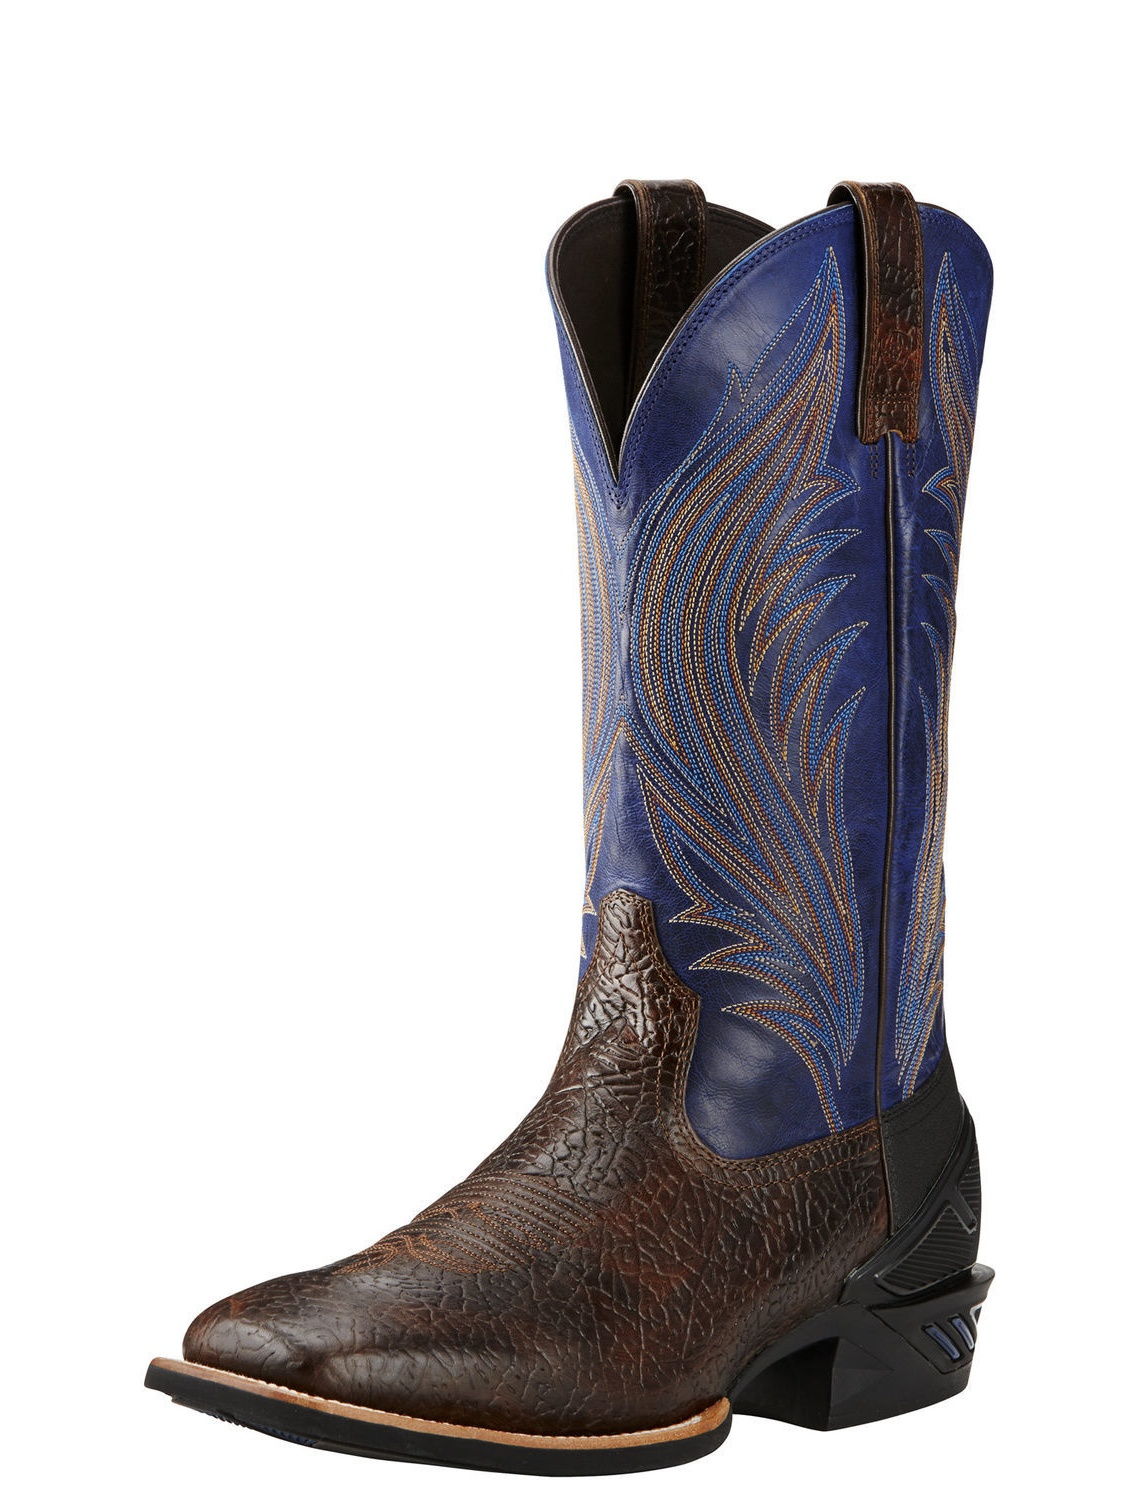 Ariat Catalyst Prime 2E Square Toe Leather Western Boot by Ariat